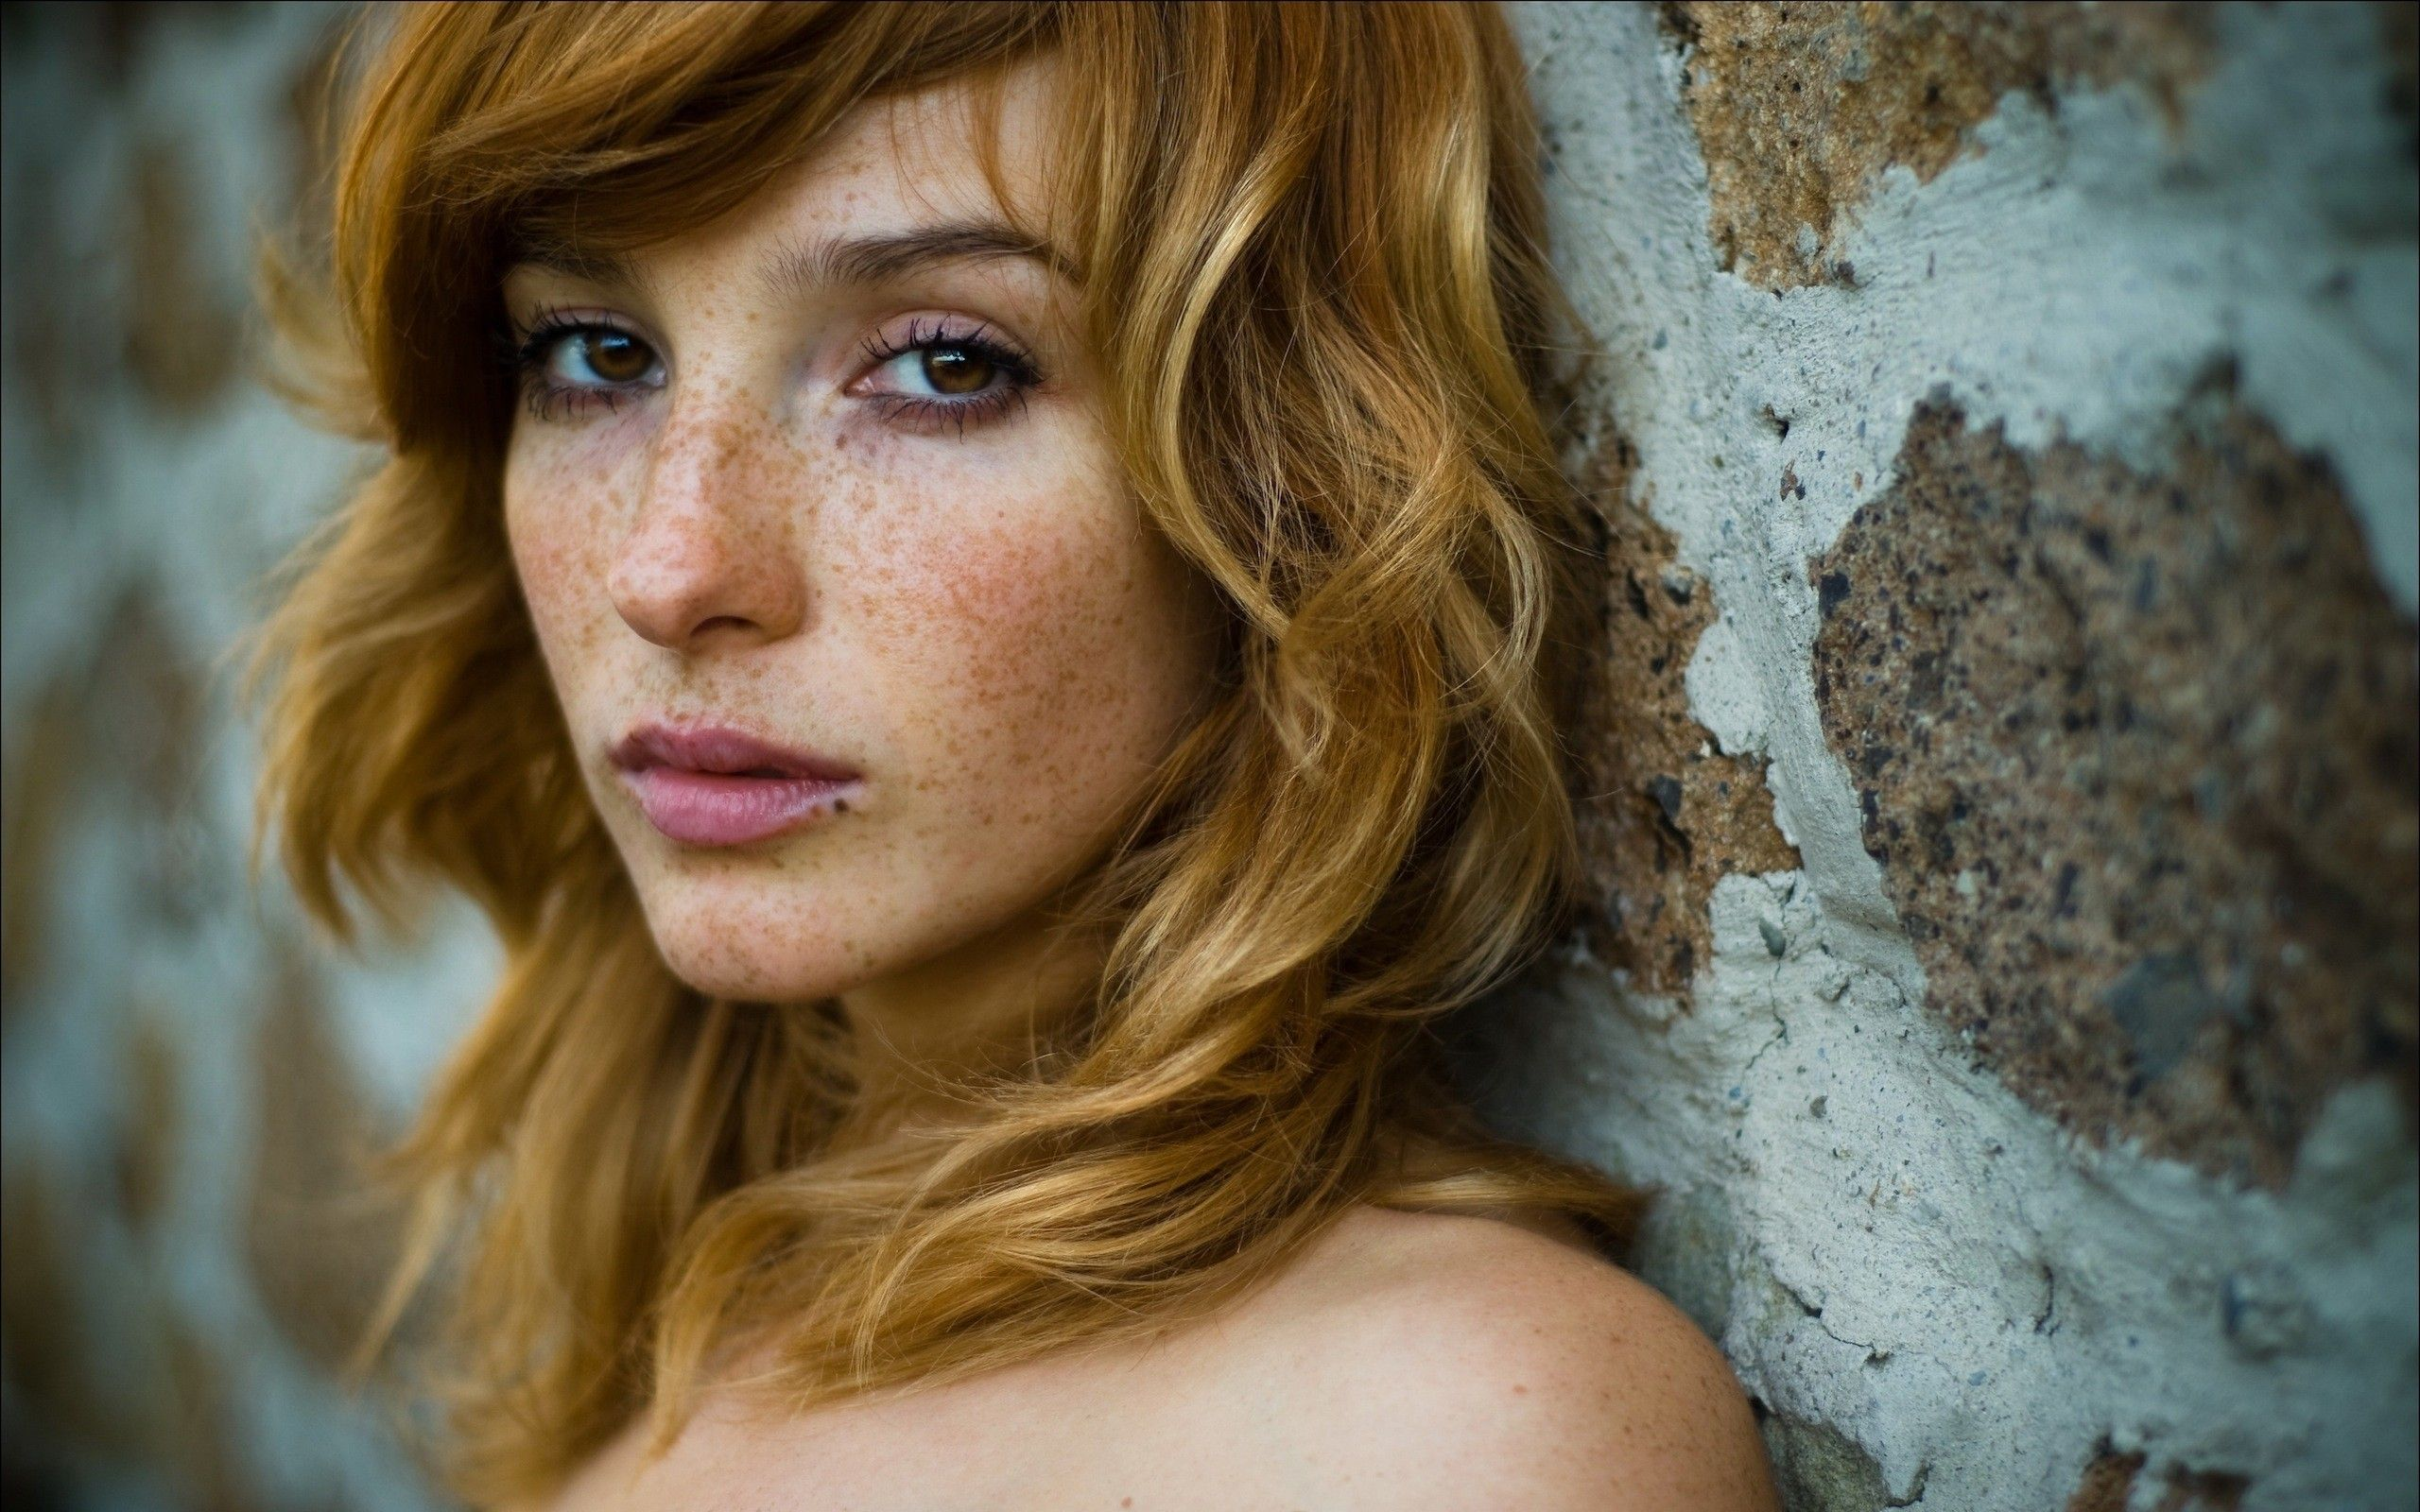 Vica Kerekes Red Hair Freckles Face Model Actress Wallpaper And Background Freckles Girl Red Hair Red Hair Freckles